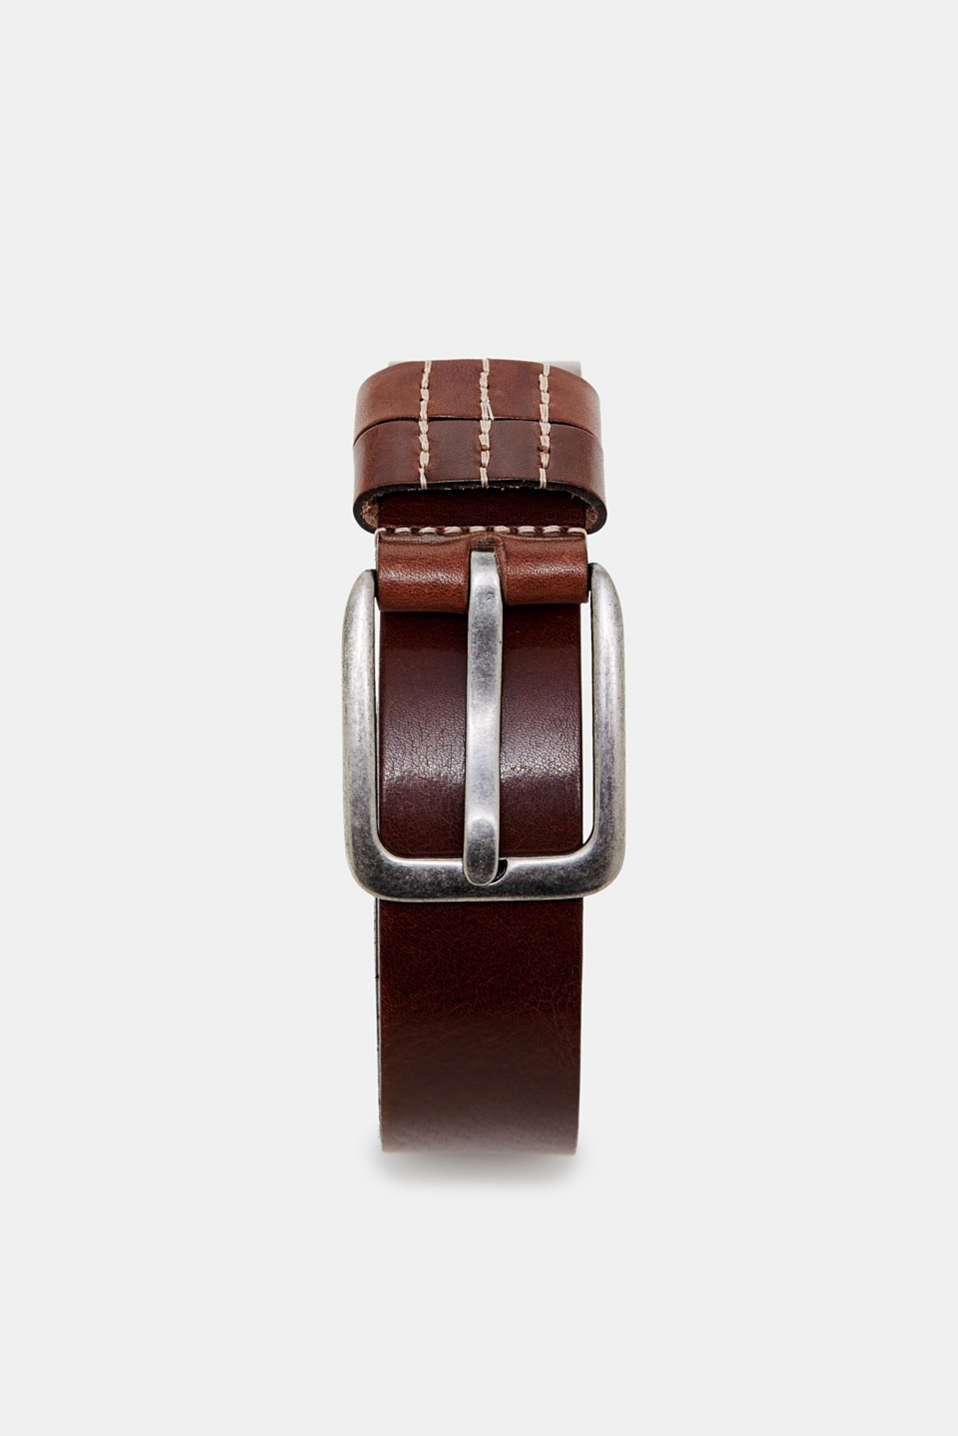 With a subtle grain and a distinctive buckle, this genuine cowhide leather belt is perfect for jeans.